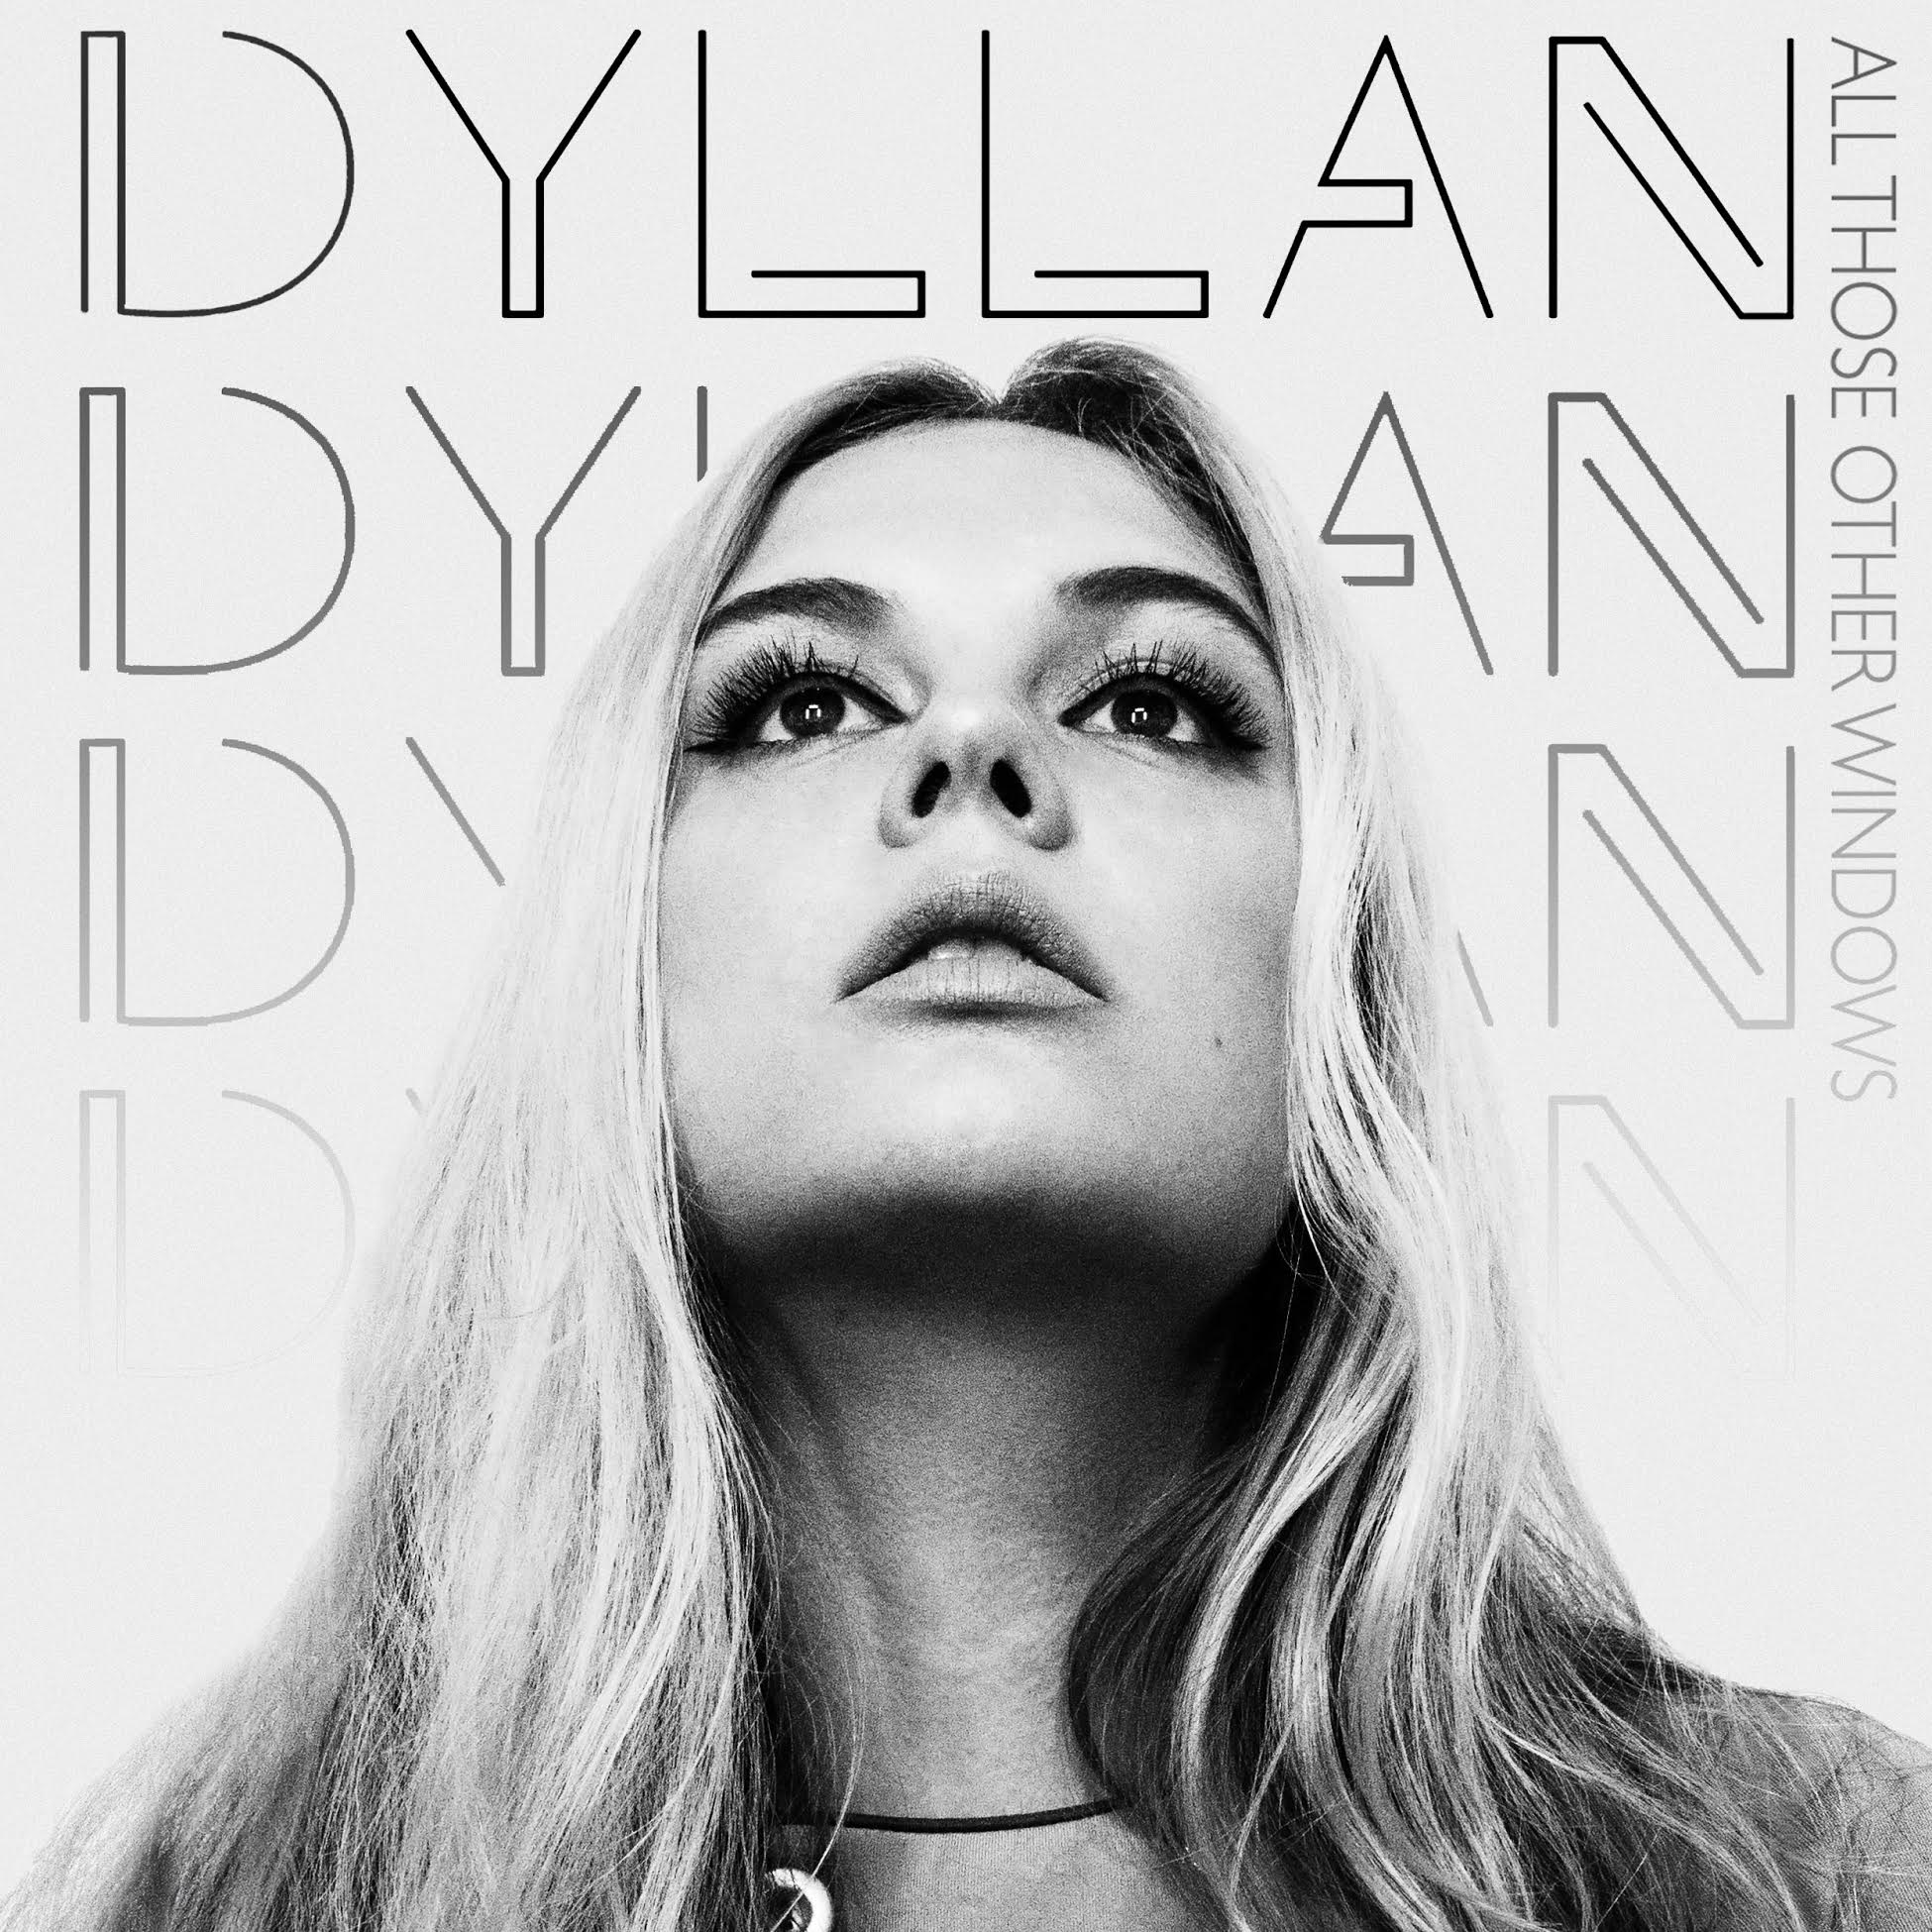 dyllan-all-those-other-windows